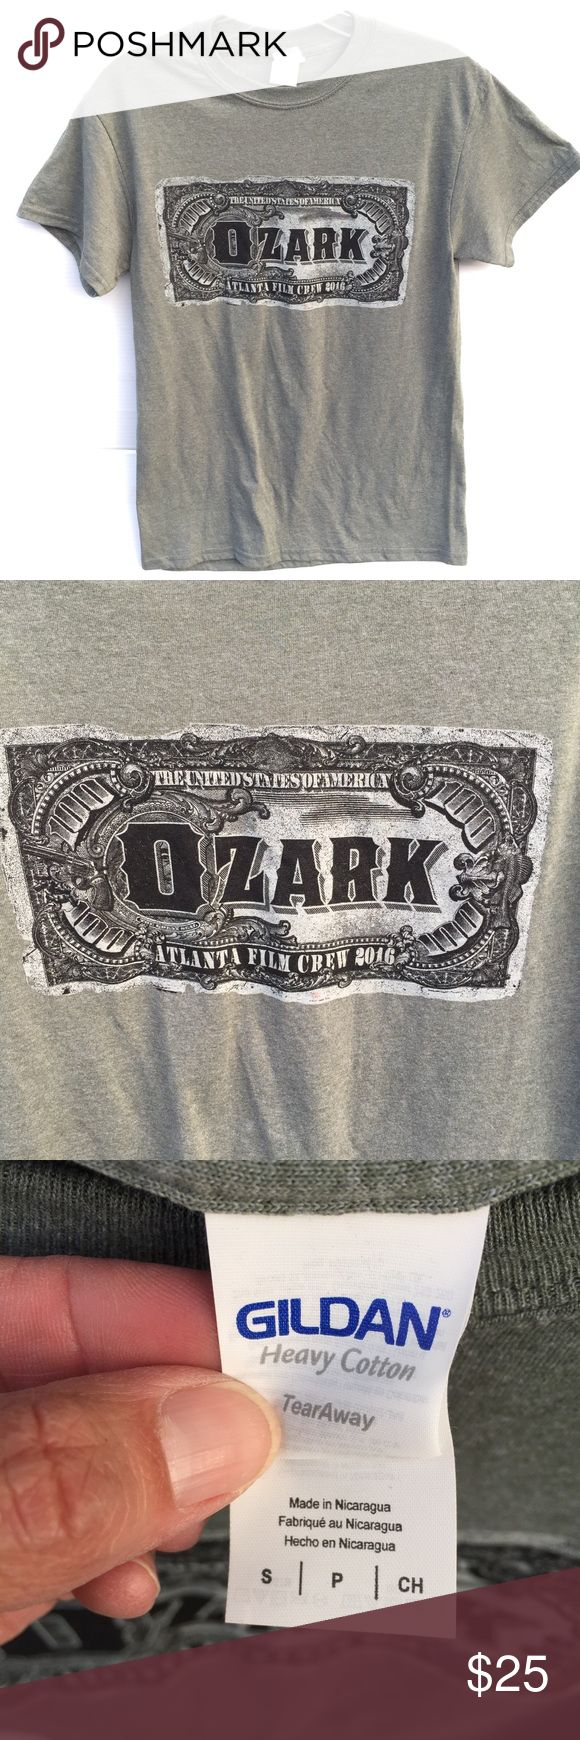 OZARK NETFLIX CREW T From the Netflix series OZARK starring Jason Bateman. Special Effects t shirt size small. Crew t shirt from the series. See my work on IMDB. I work in the movie business. No discounts. MOVIE T Tops Tees - Short Sleeve